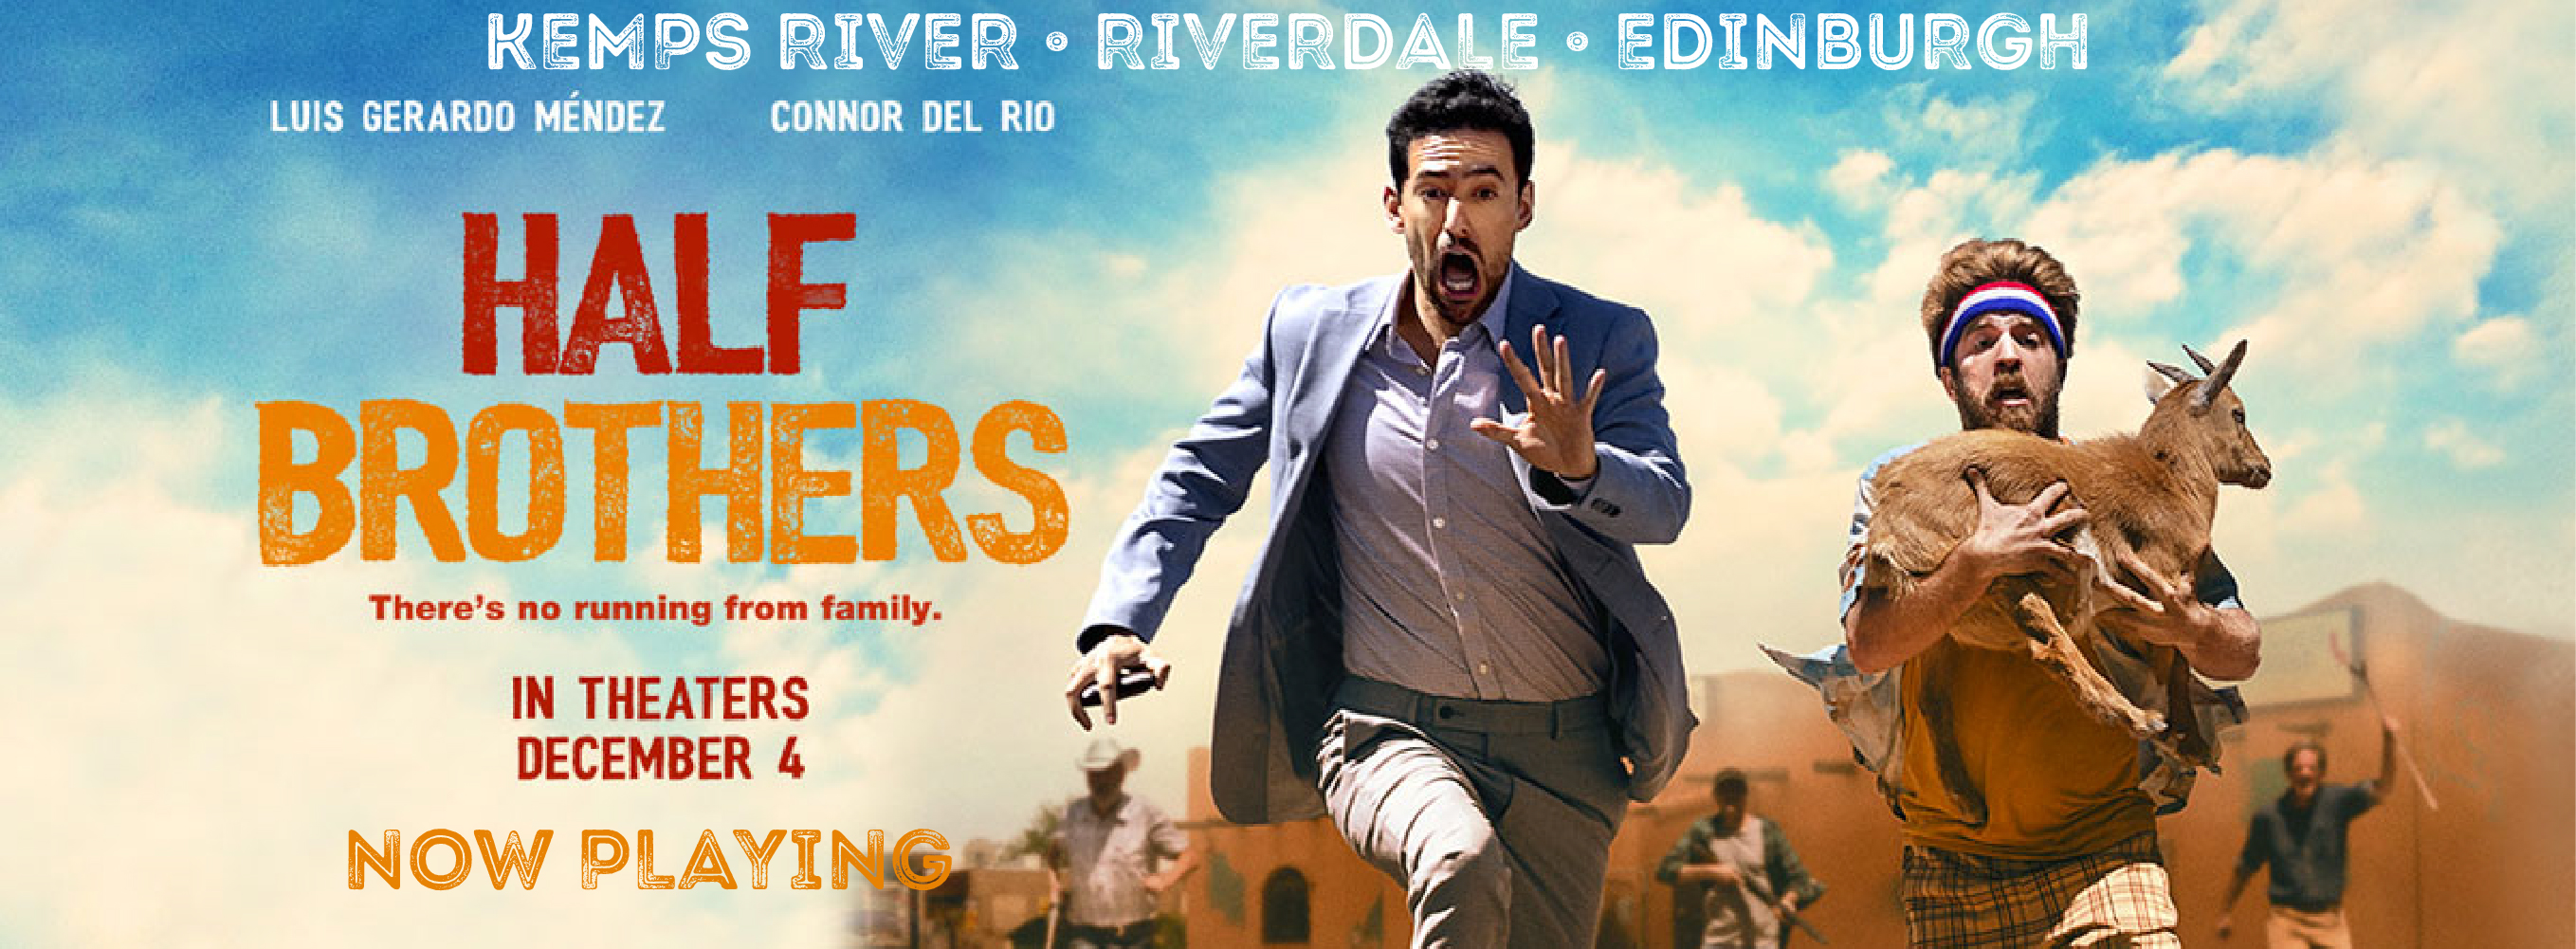 Get tickets to Half Brothers now playing at our Kemps River, Riverdale, and Edinburgh locations.